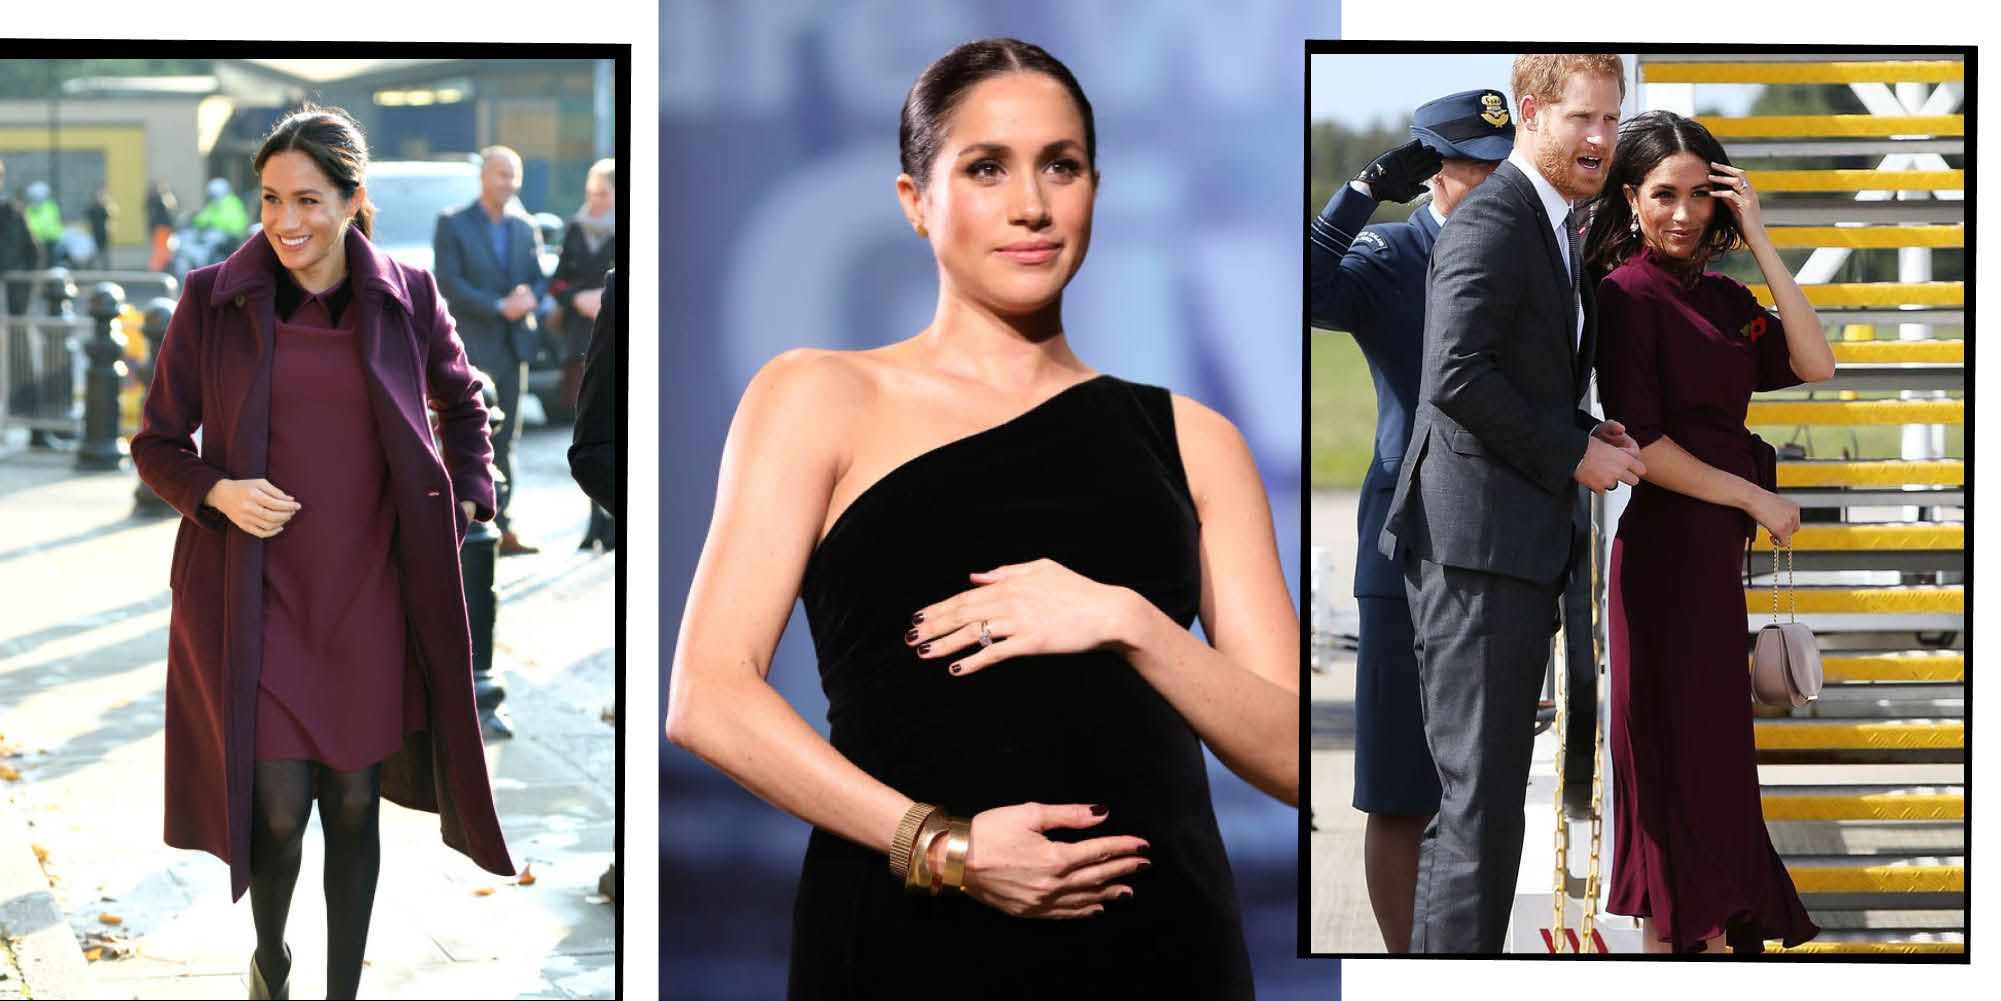 55c4207a0d1 Meghan Markle s Maternity Style - Charting Meghan s Baby Bump Style